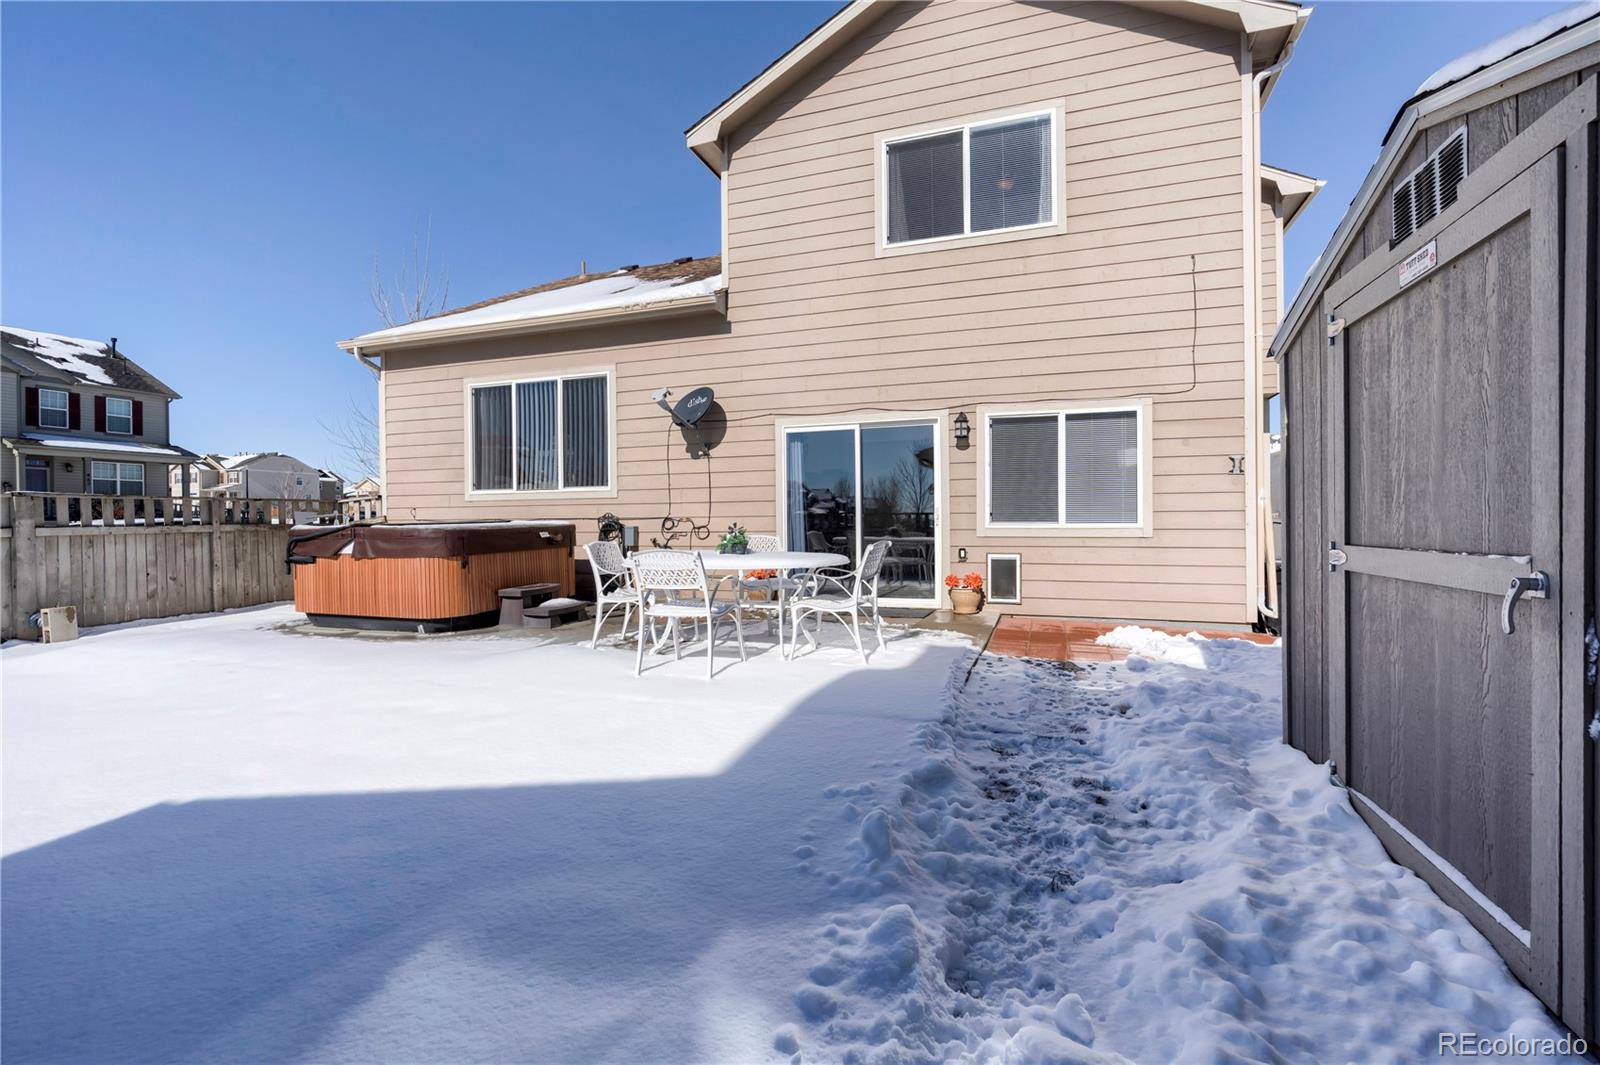 MLS# 5447546 - 39 - 1756 Jade Avenue, Lochbuie, CO 80603